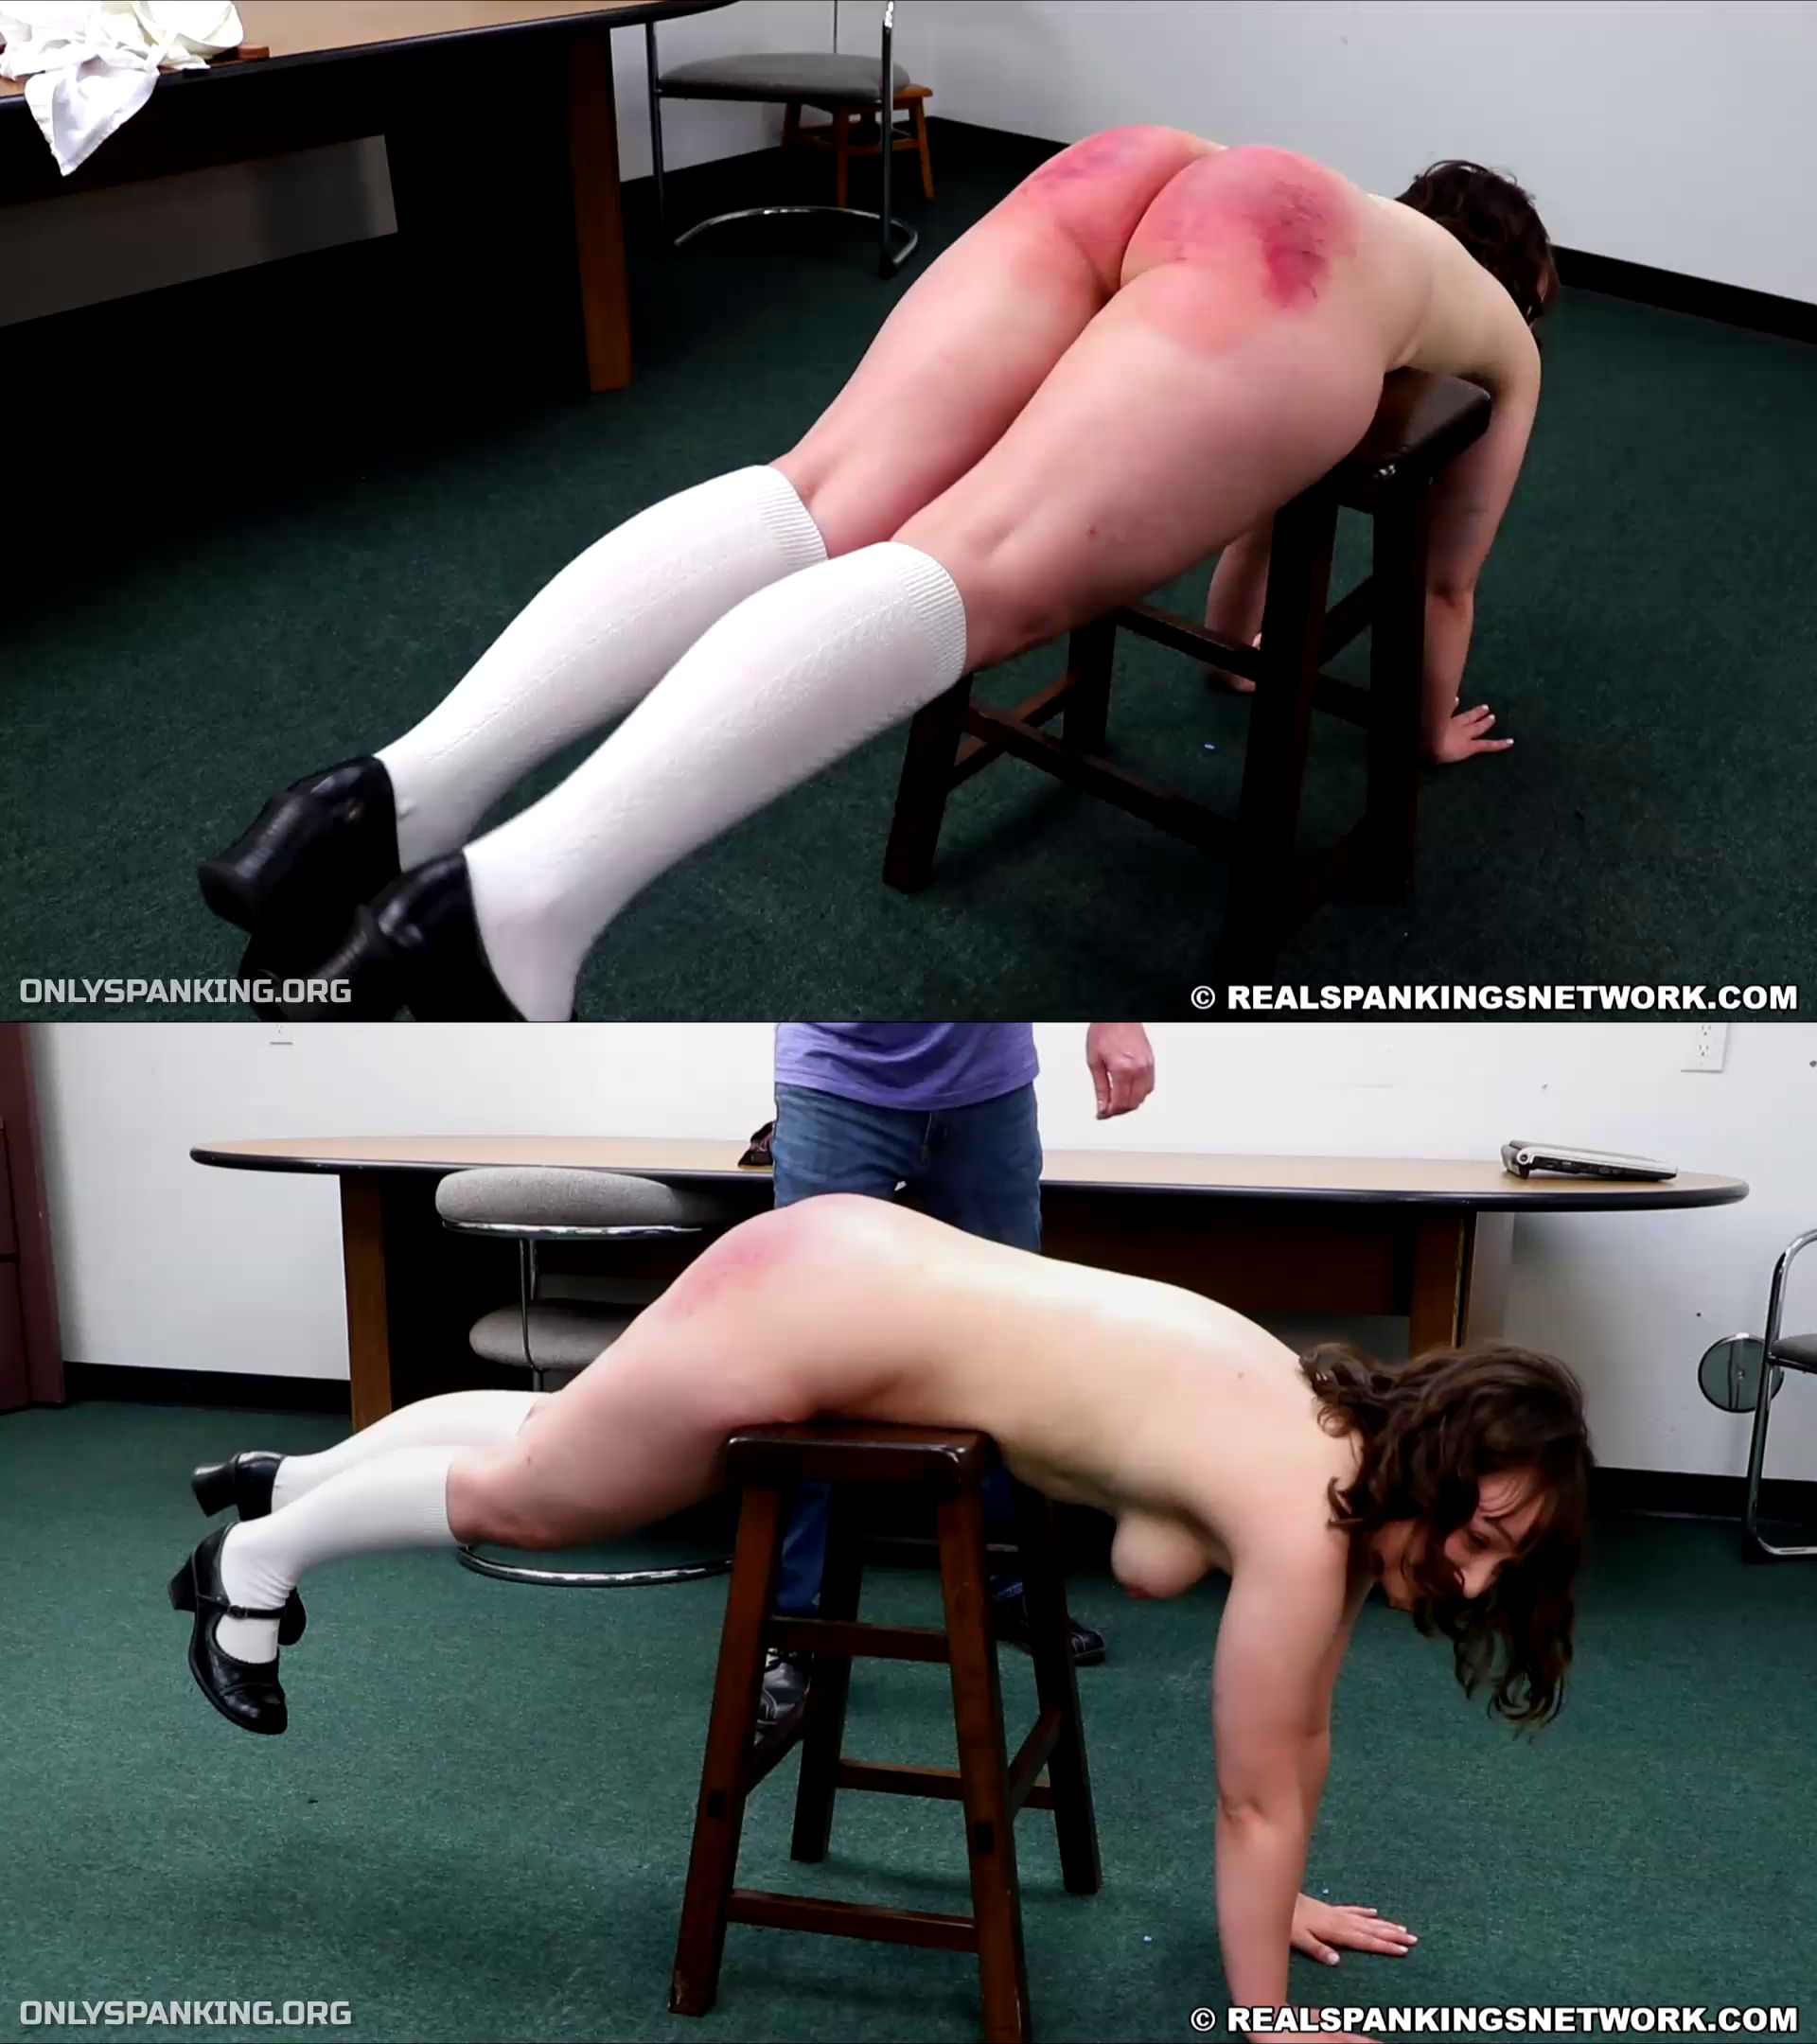 realspankingsinstitute/Realspankings Network Clips – MP4/HD – Ella – Ella's Painful Day With The Dean (part 2 Of 3) (Release date: Aug. 13, 2021)